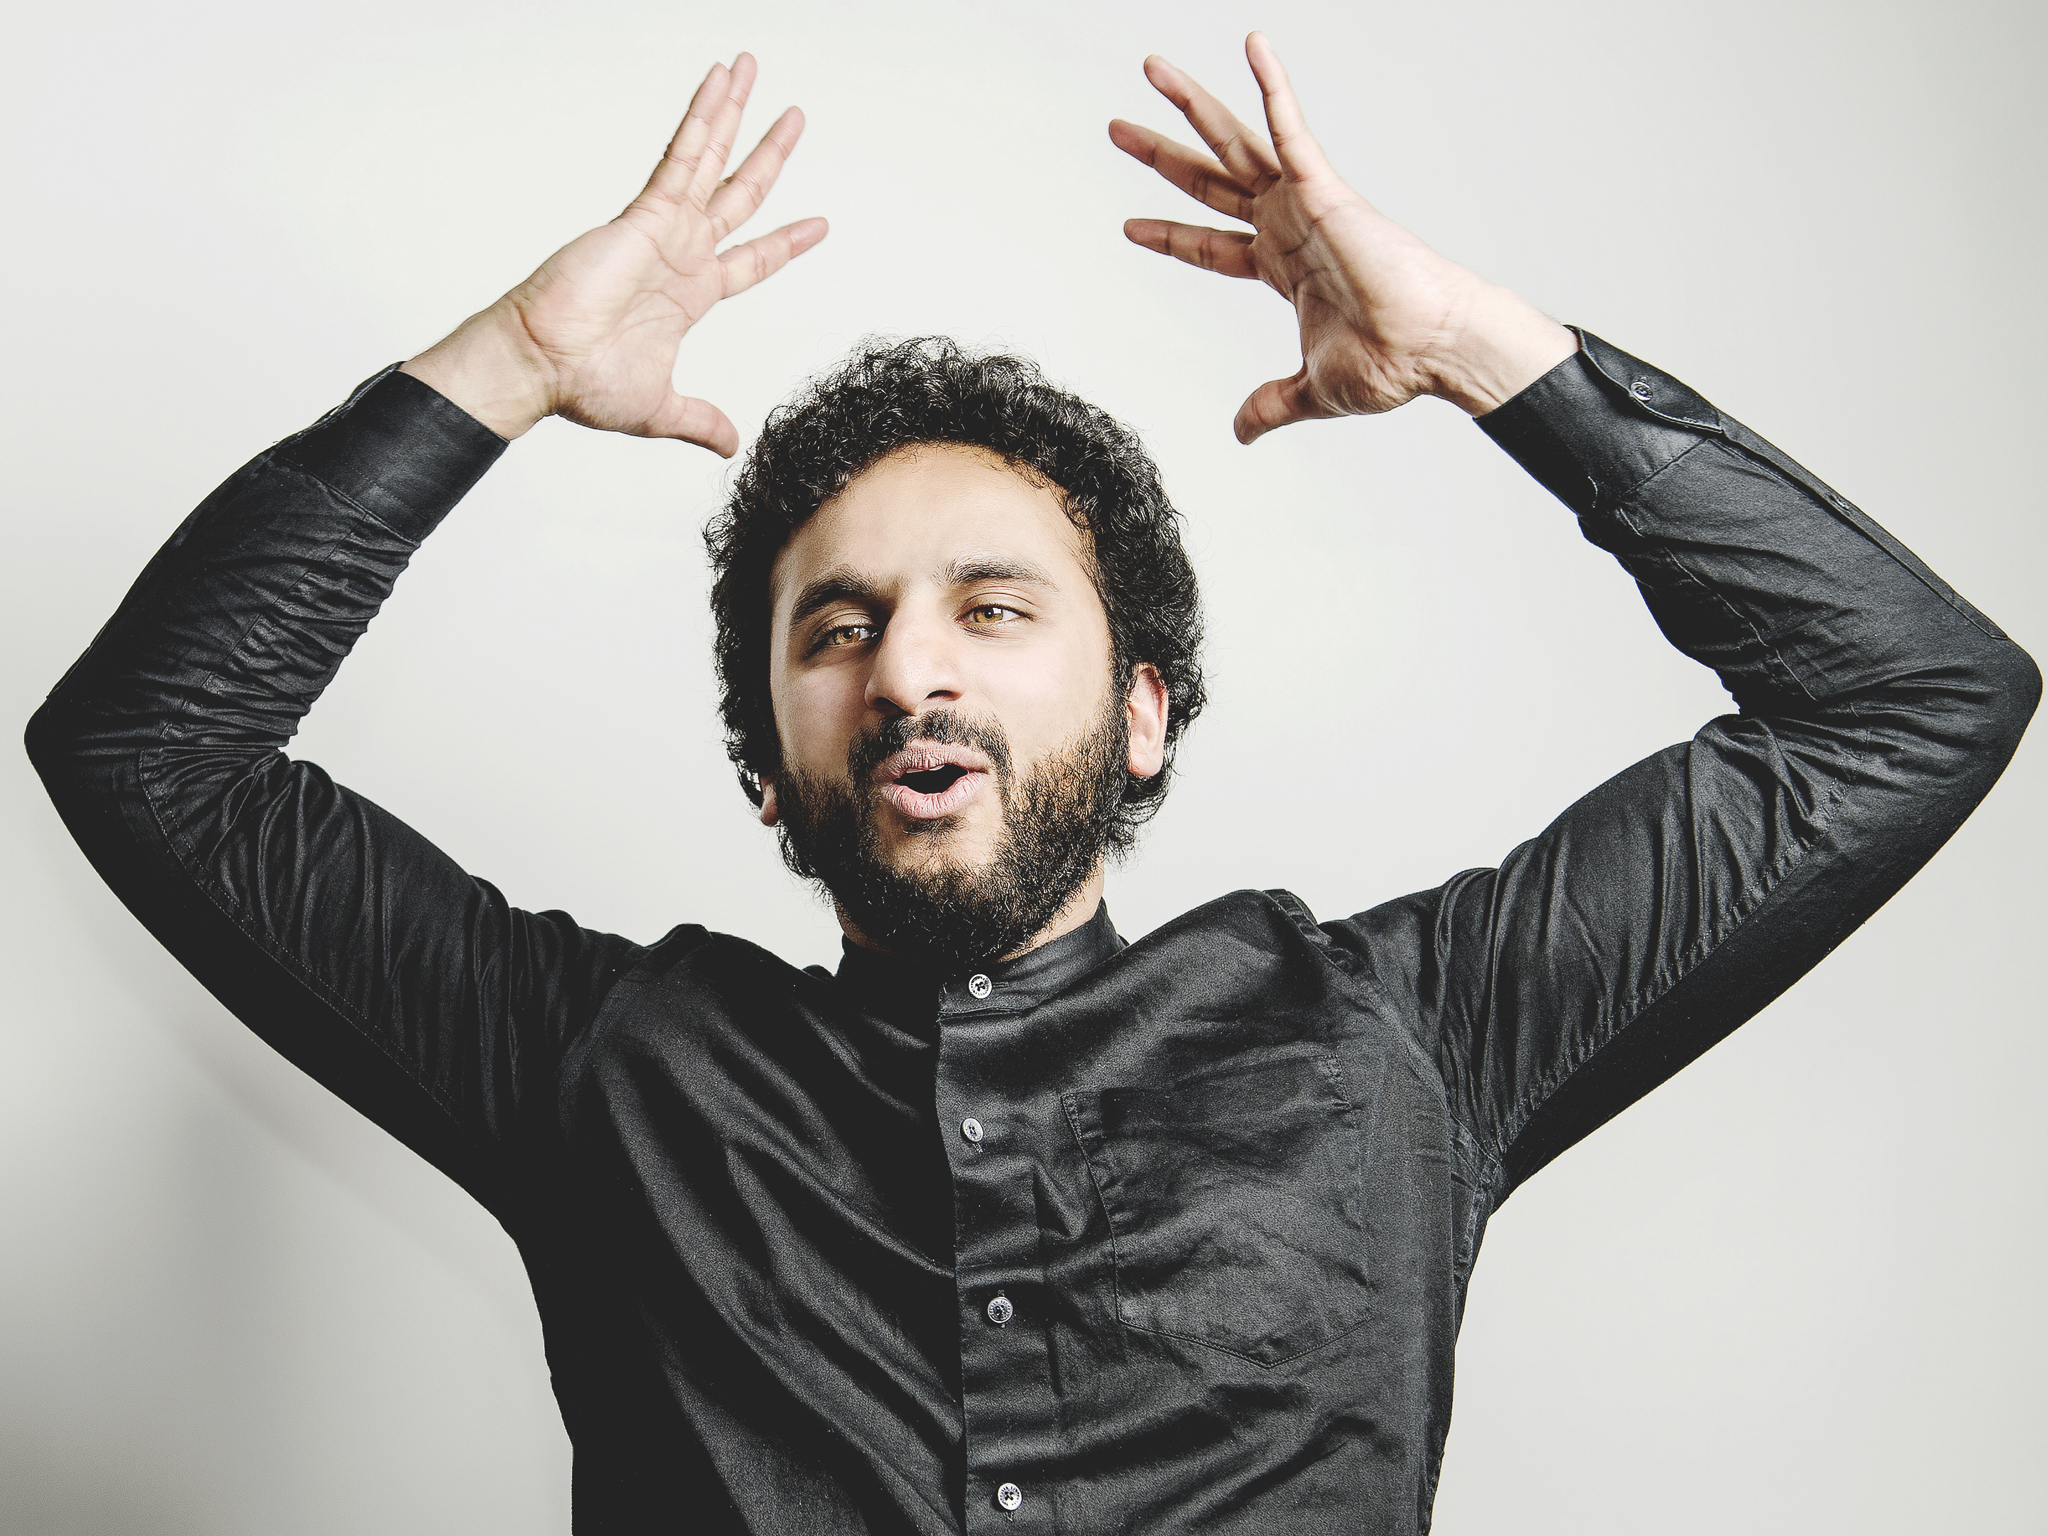 The 100 best comedy movies, Nish Kumar